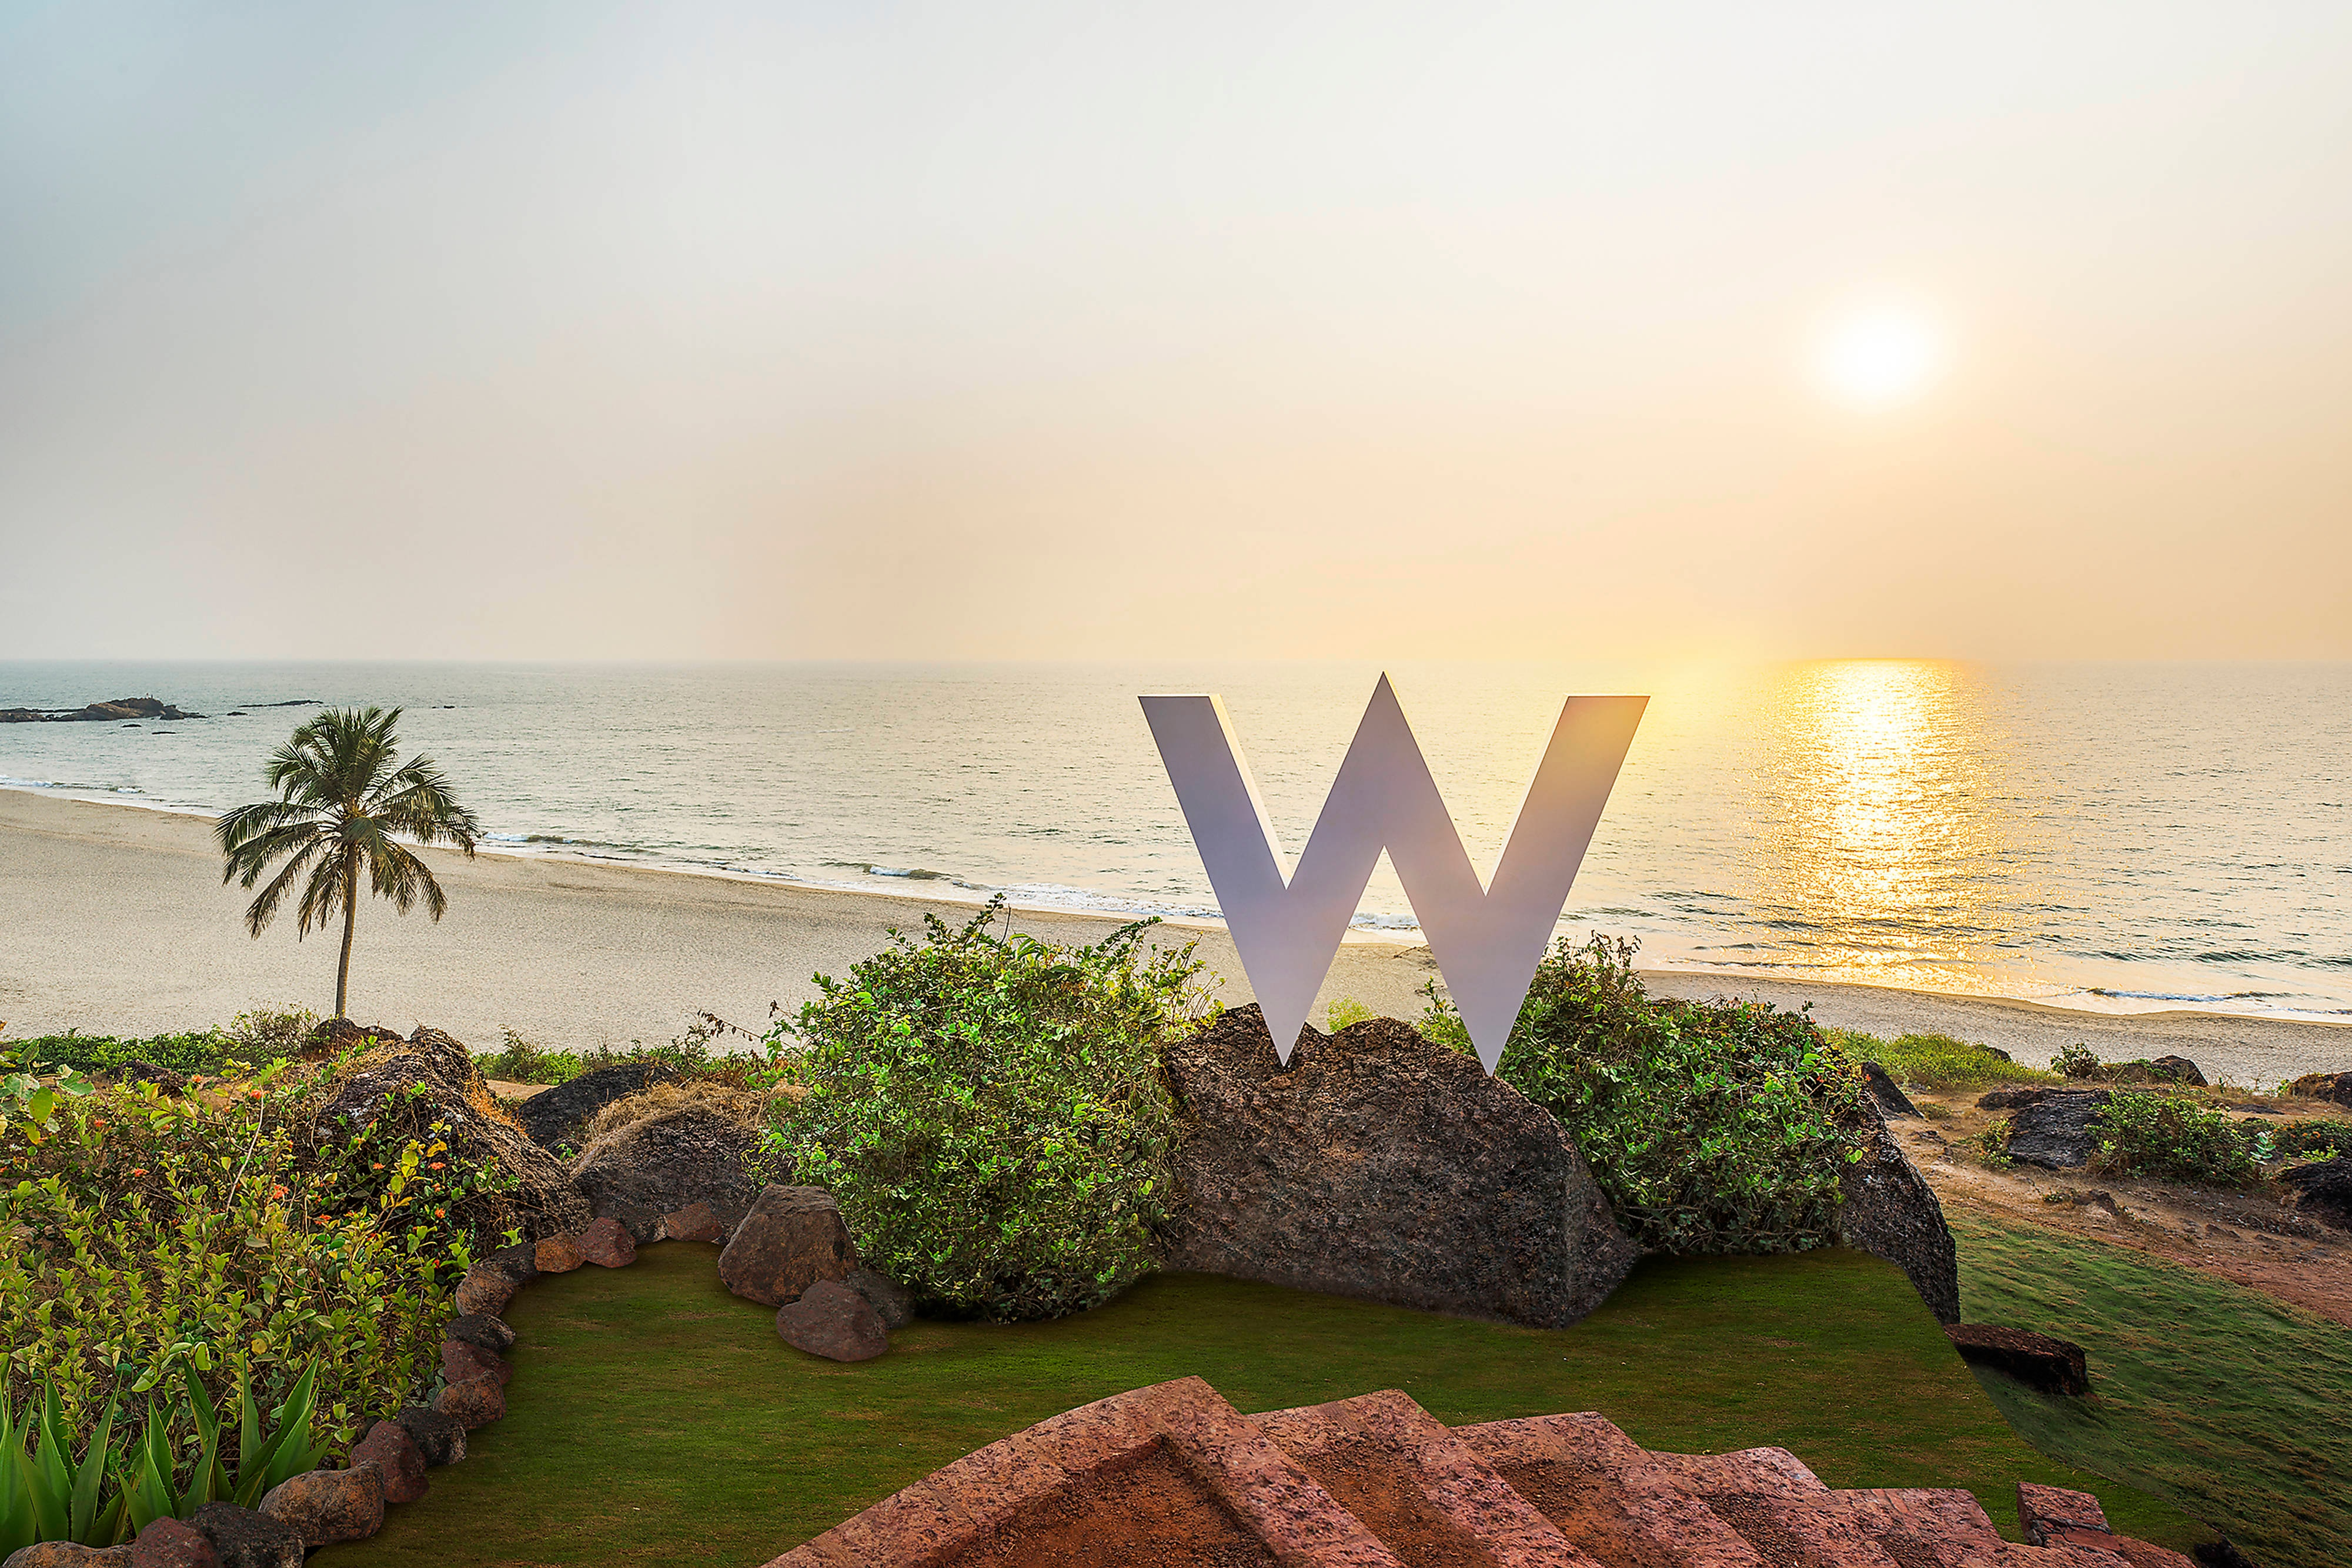 W sign on beach grounds